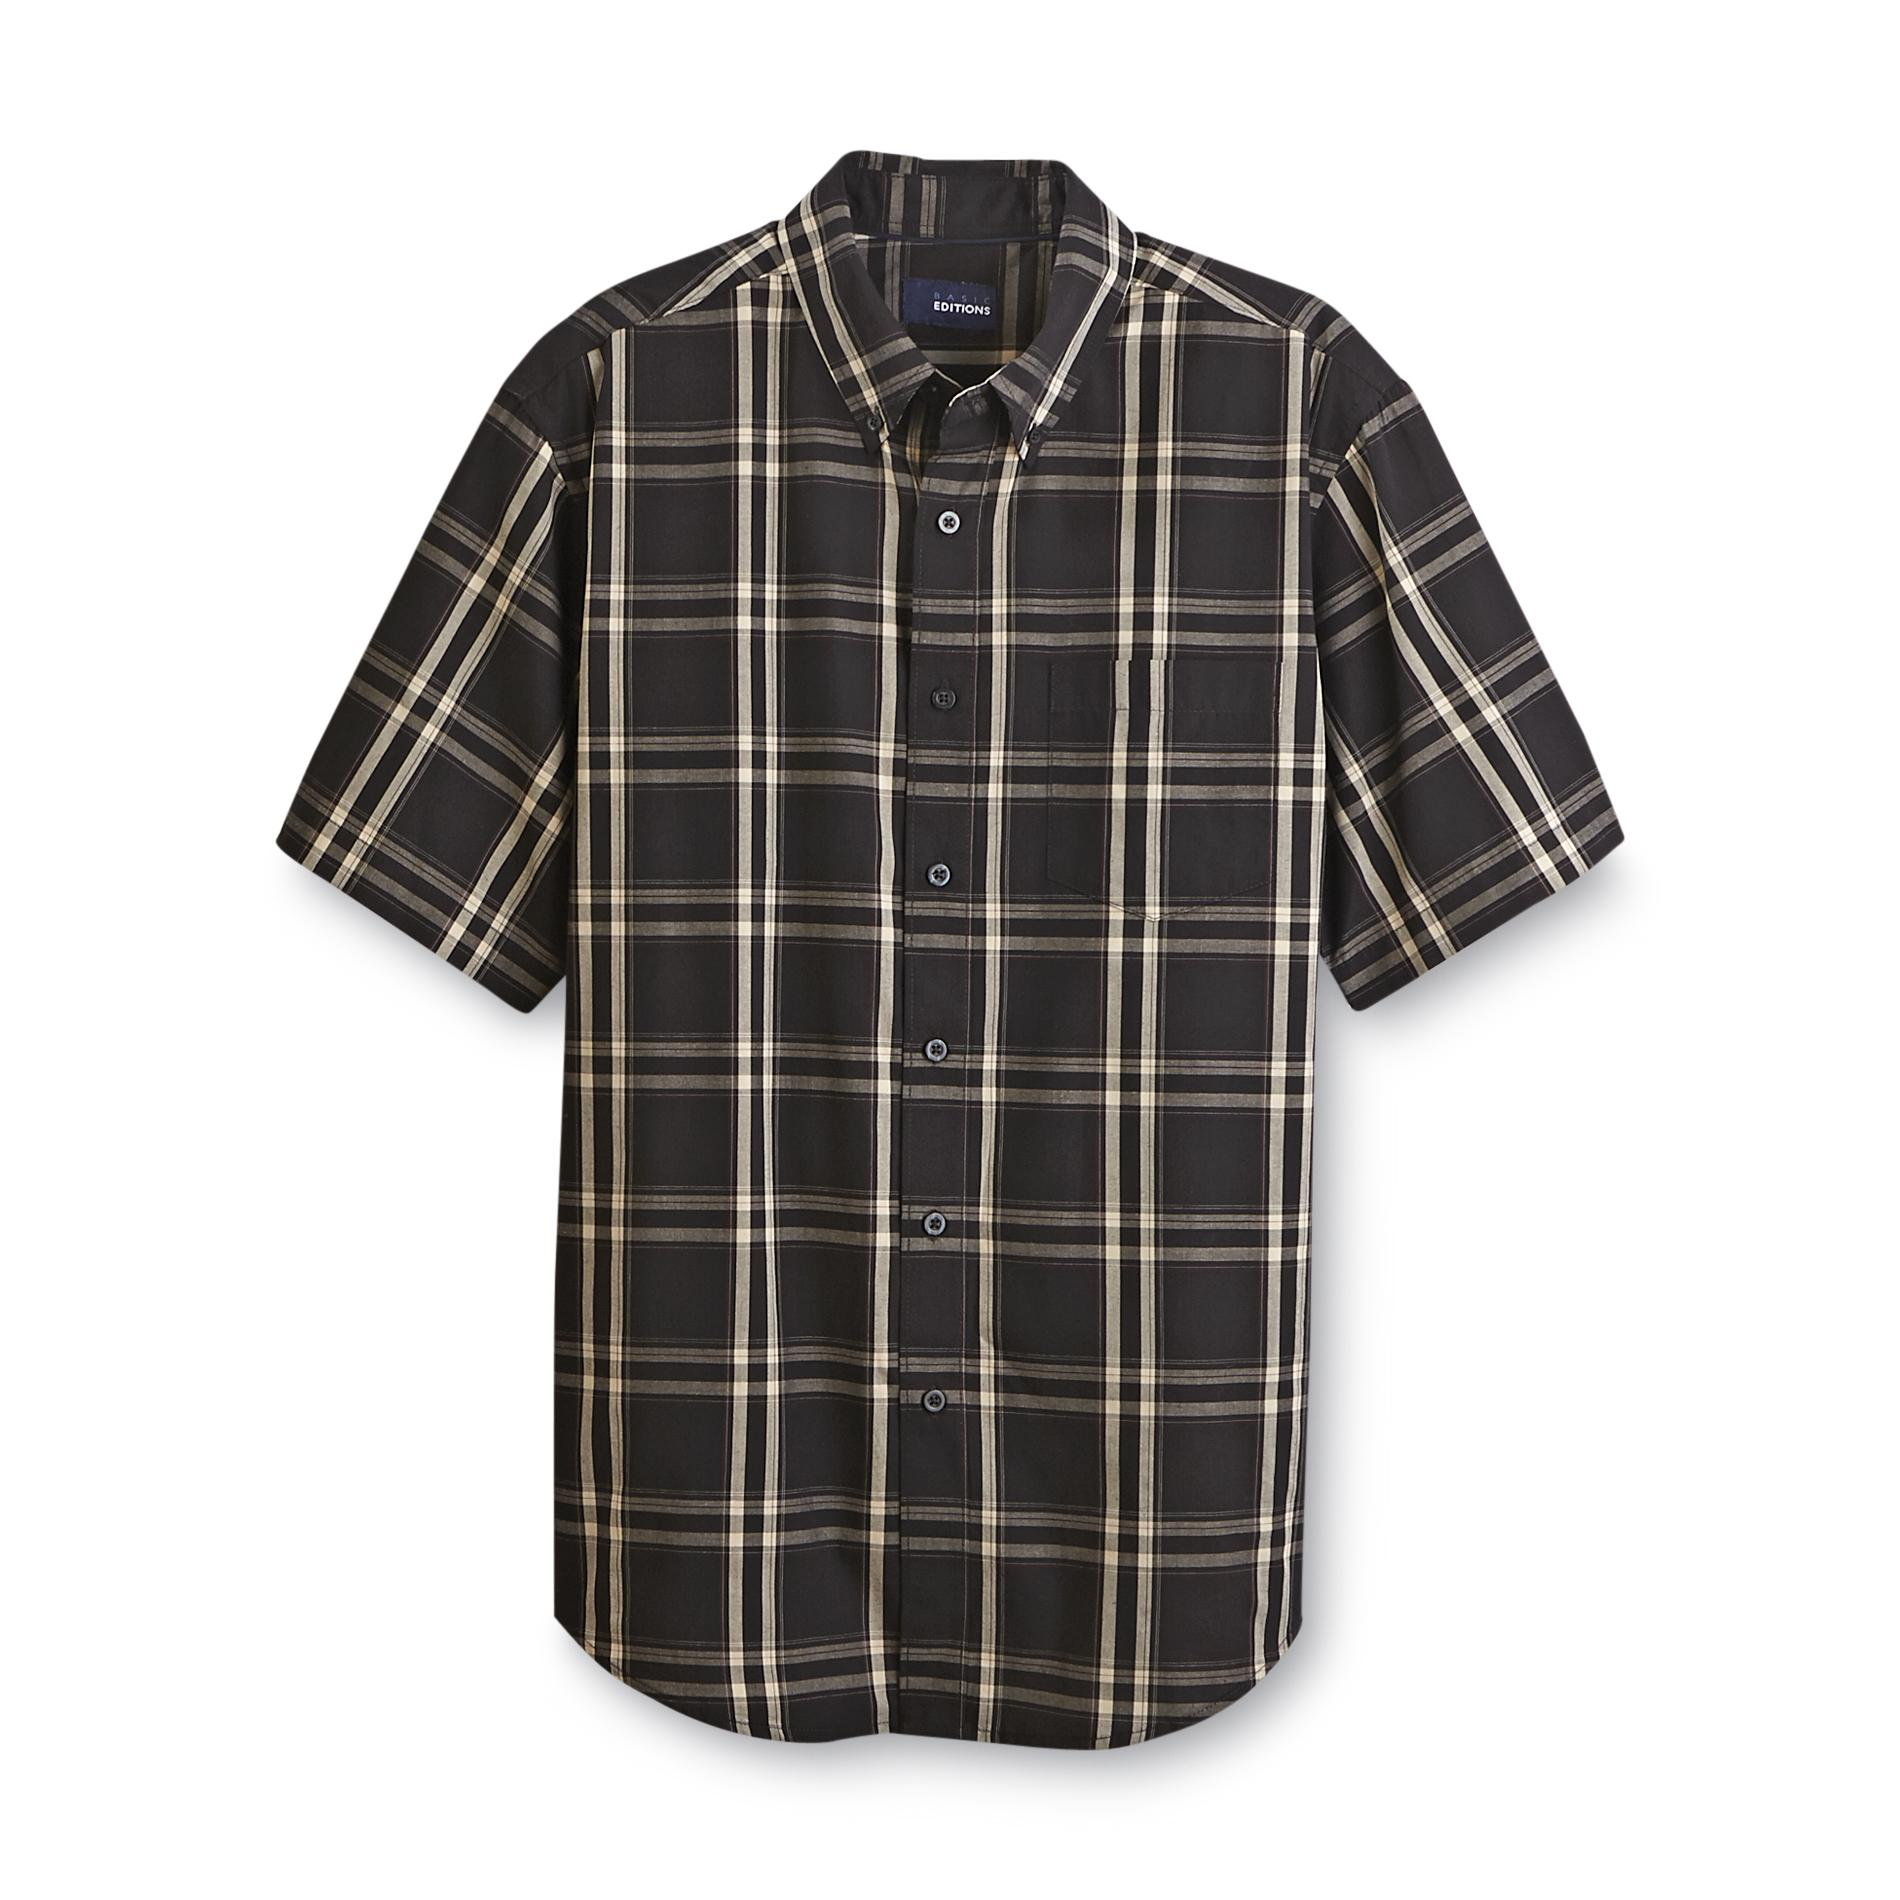 Basic Editions Men's Short-Sleeve Easy Care Shirt - Plaid at Kmart.com